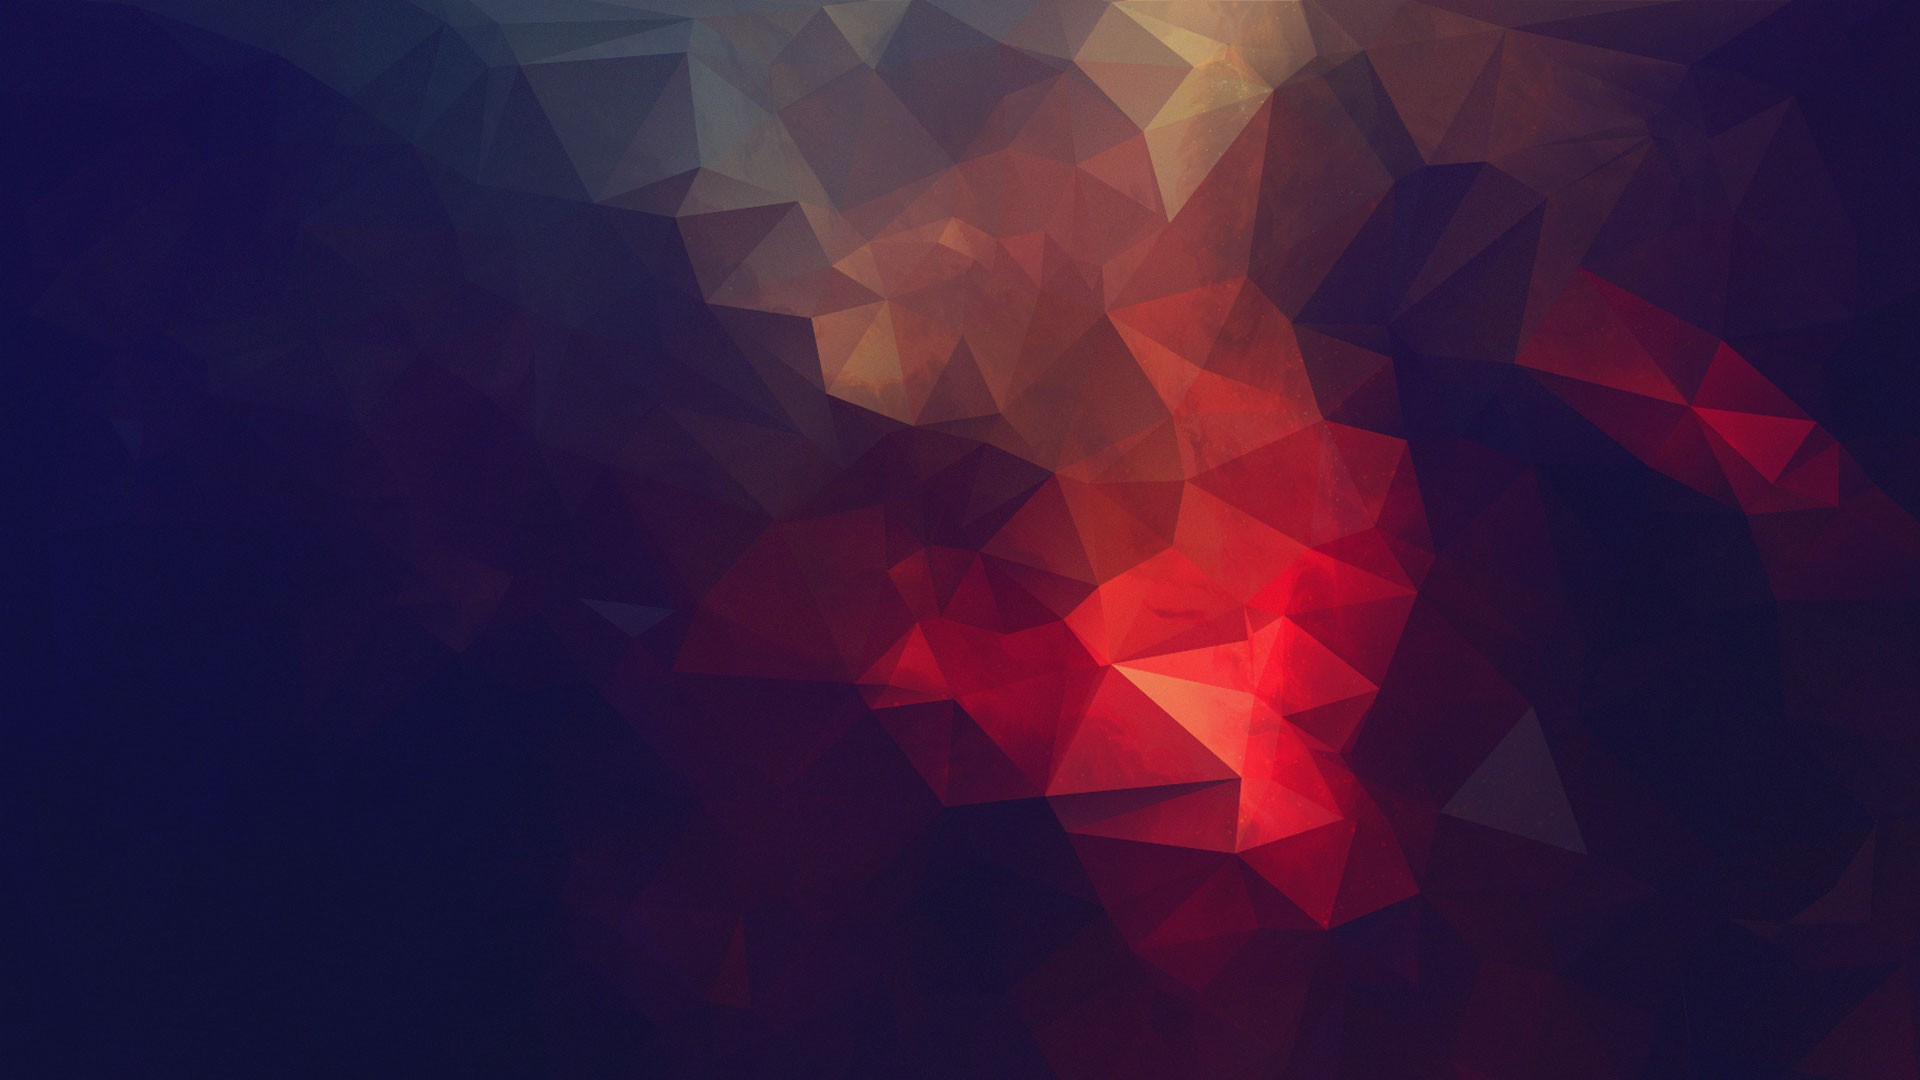 abstract, minimalism, low poly :: Wallpapers